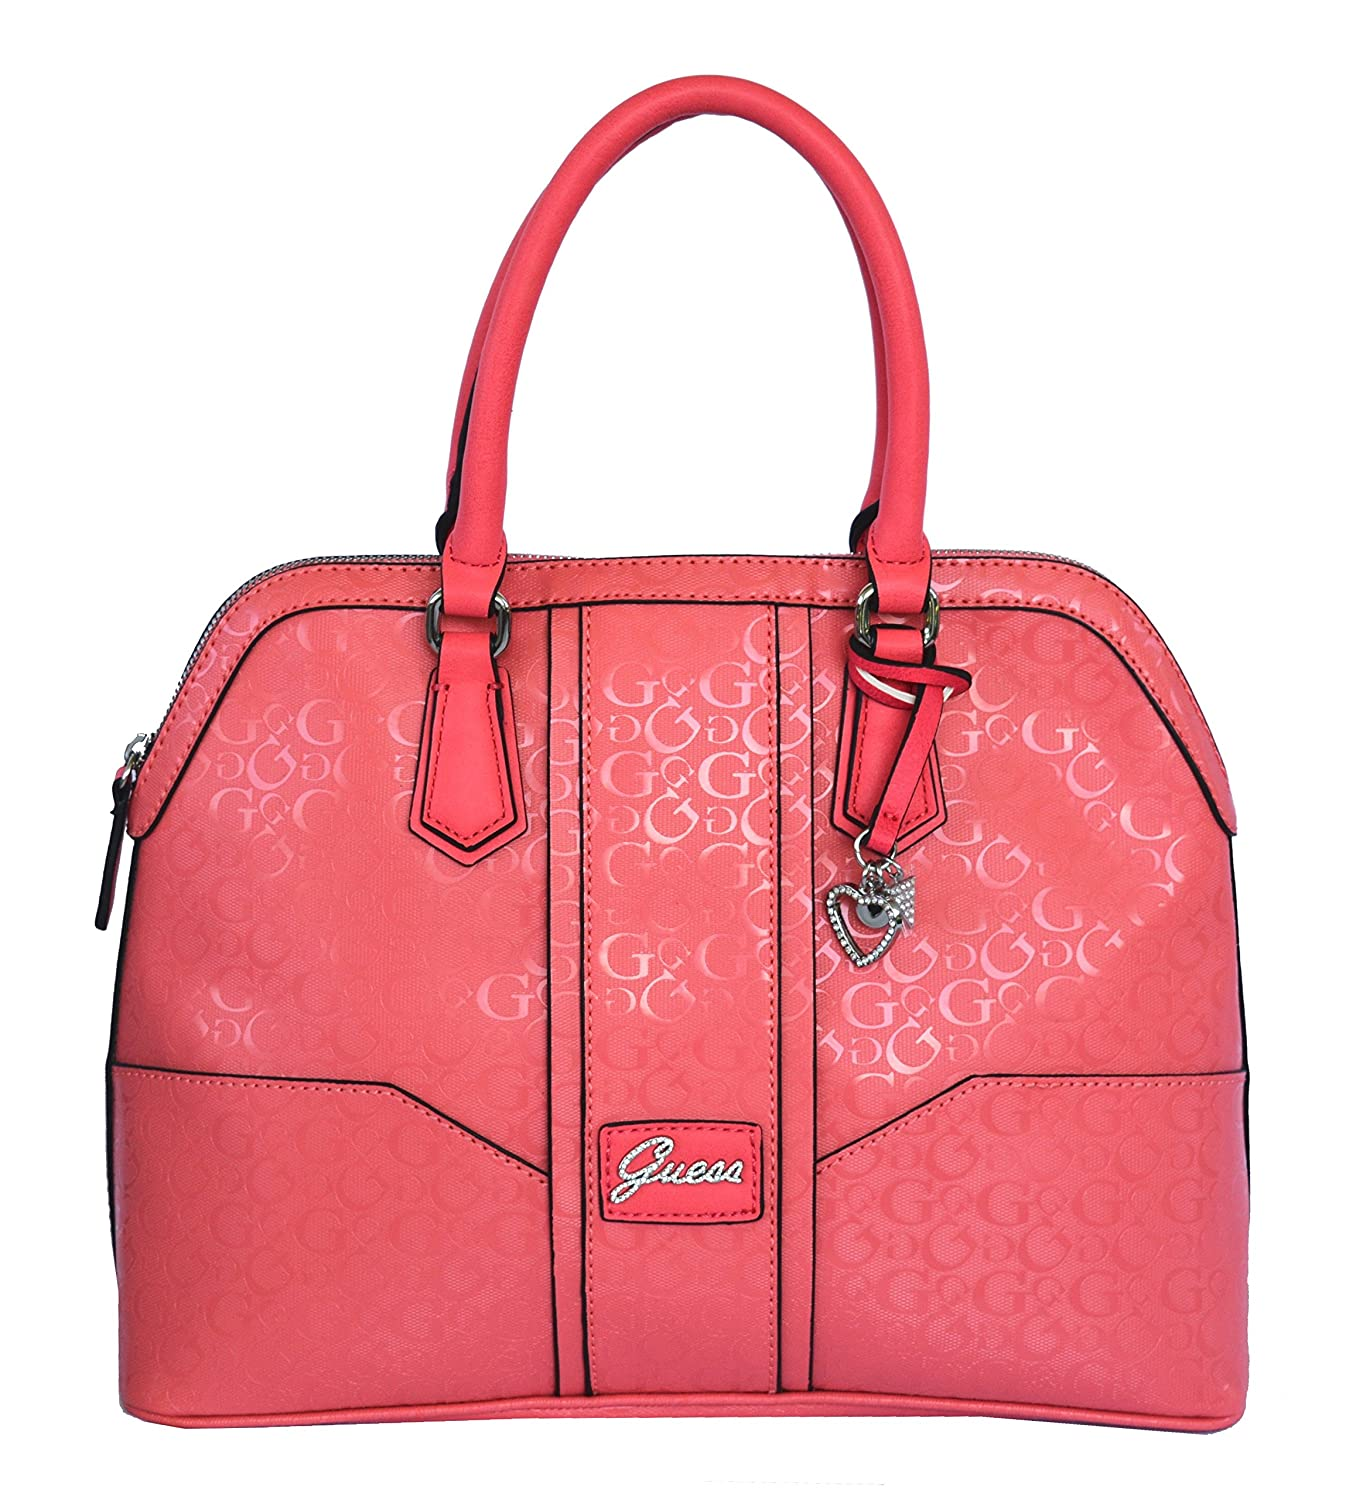 GUESS Signature Dancing Dome Satchel Crossbody Bag Handbag Purse Passion: Handbags: Amazon.com